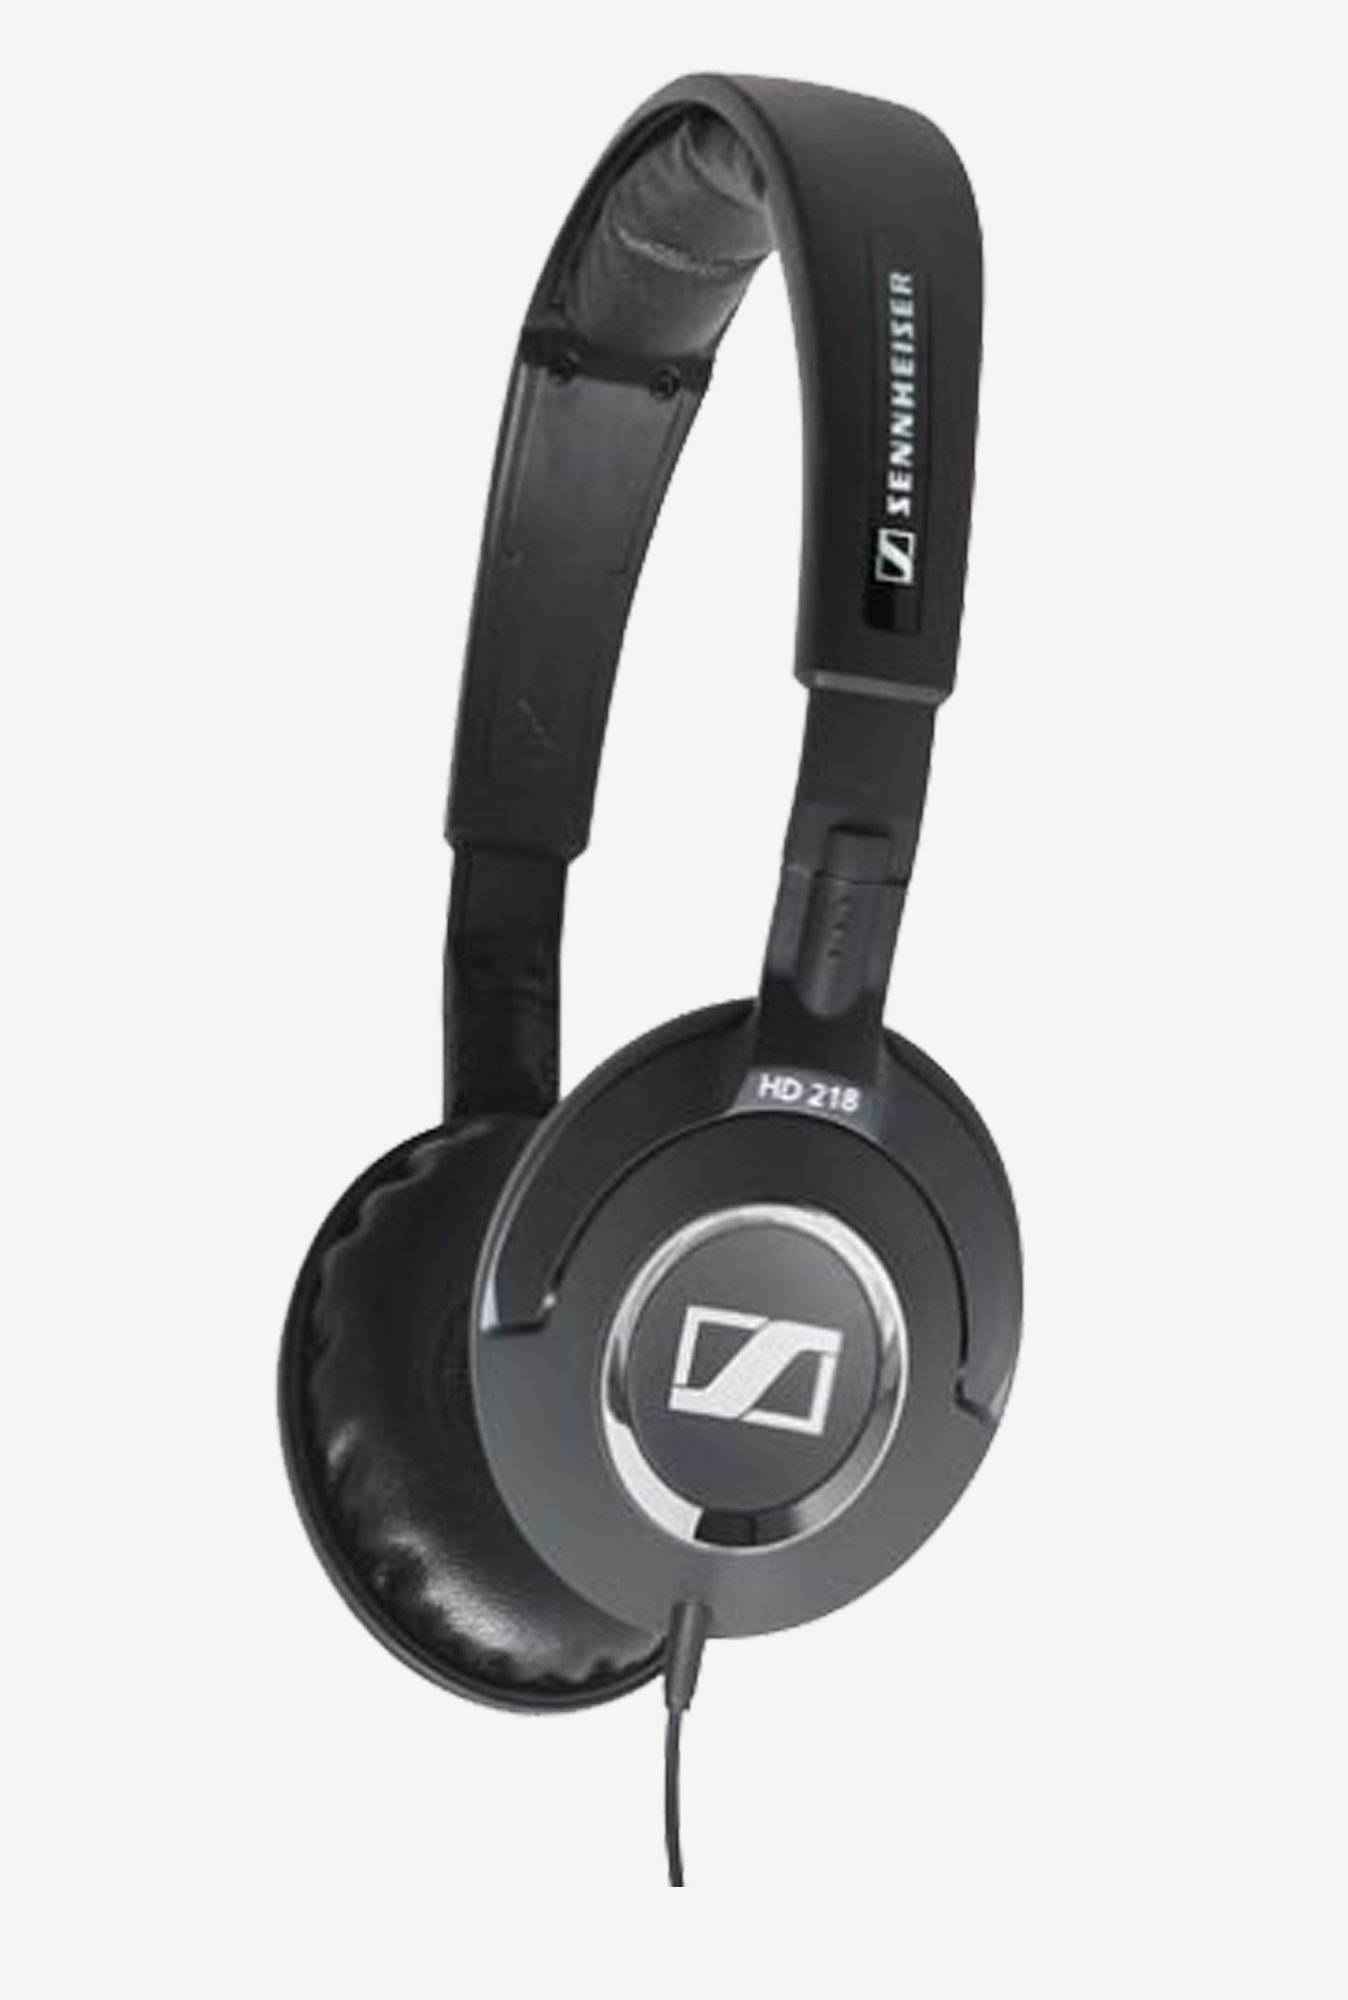 Sennheiser HD 218 On the Ear Stereo Headphone (Black)